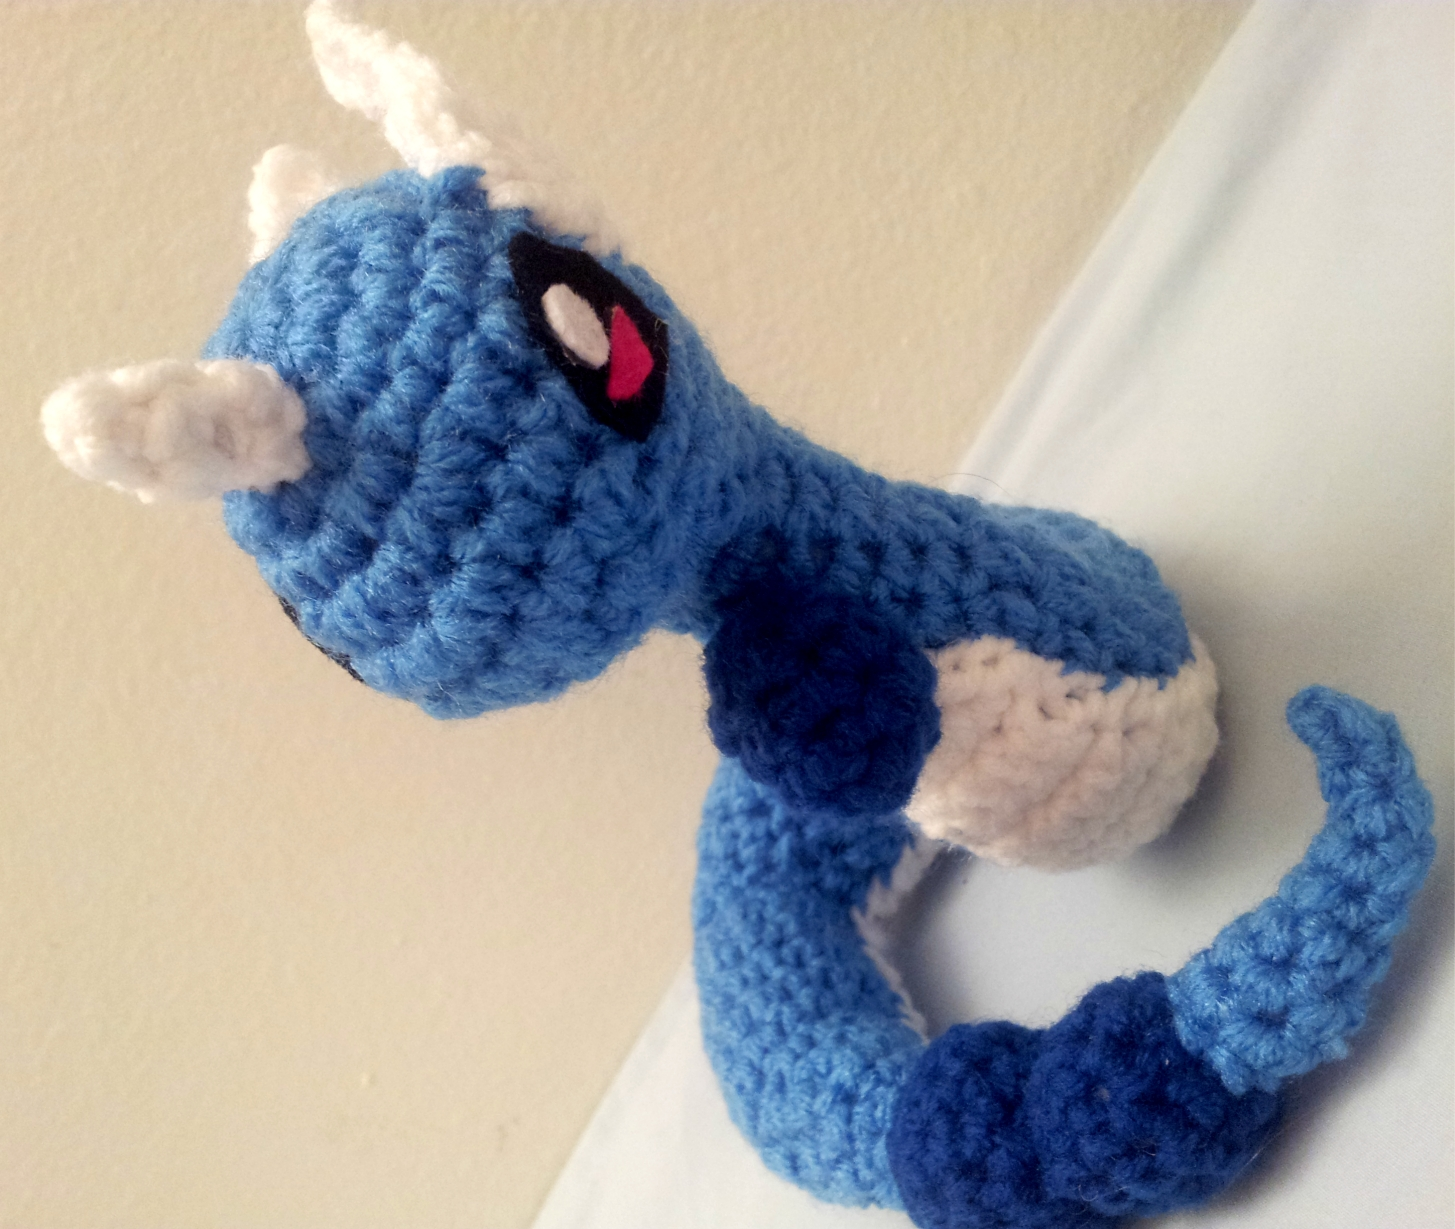 Dragonair Amigurumi Pattern : Dragonair Inspired Crochet Amigurumi Doll - Stuffed/Plush ...